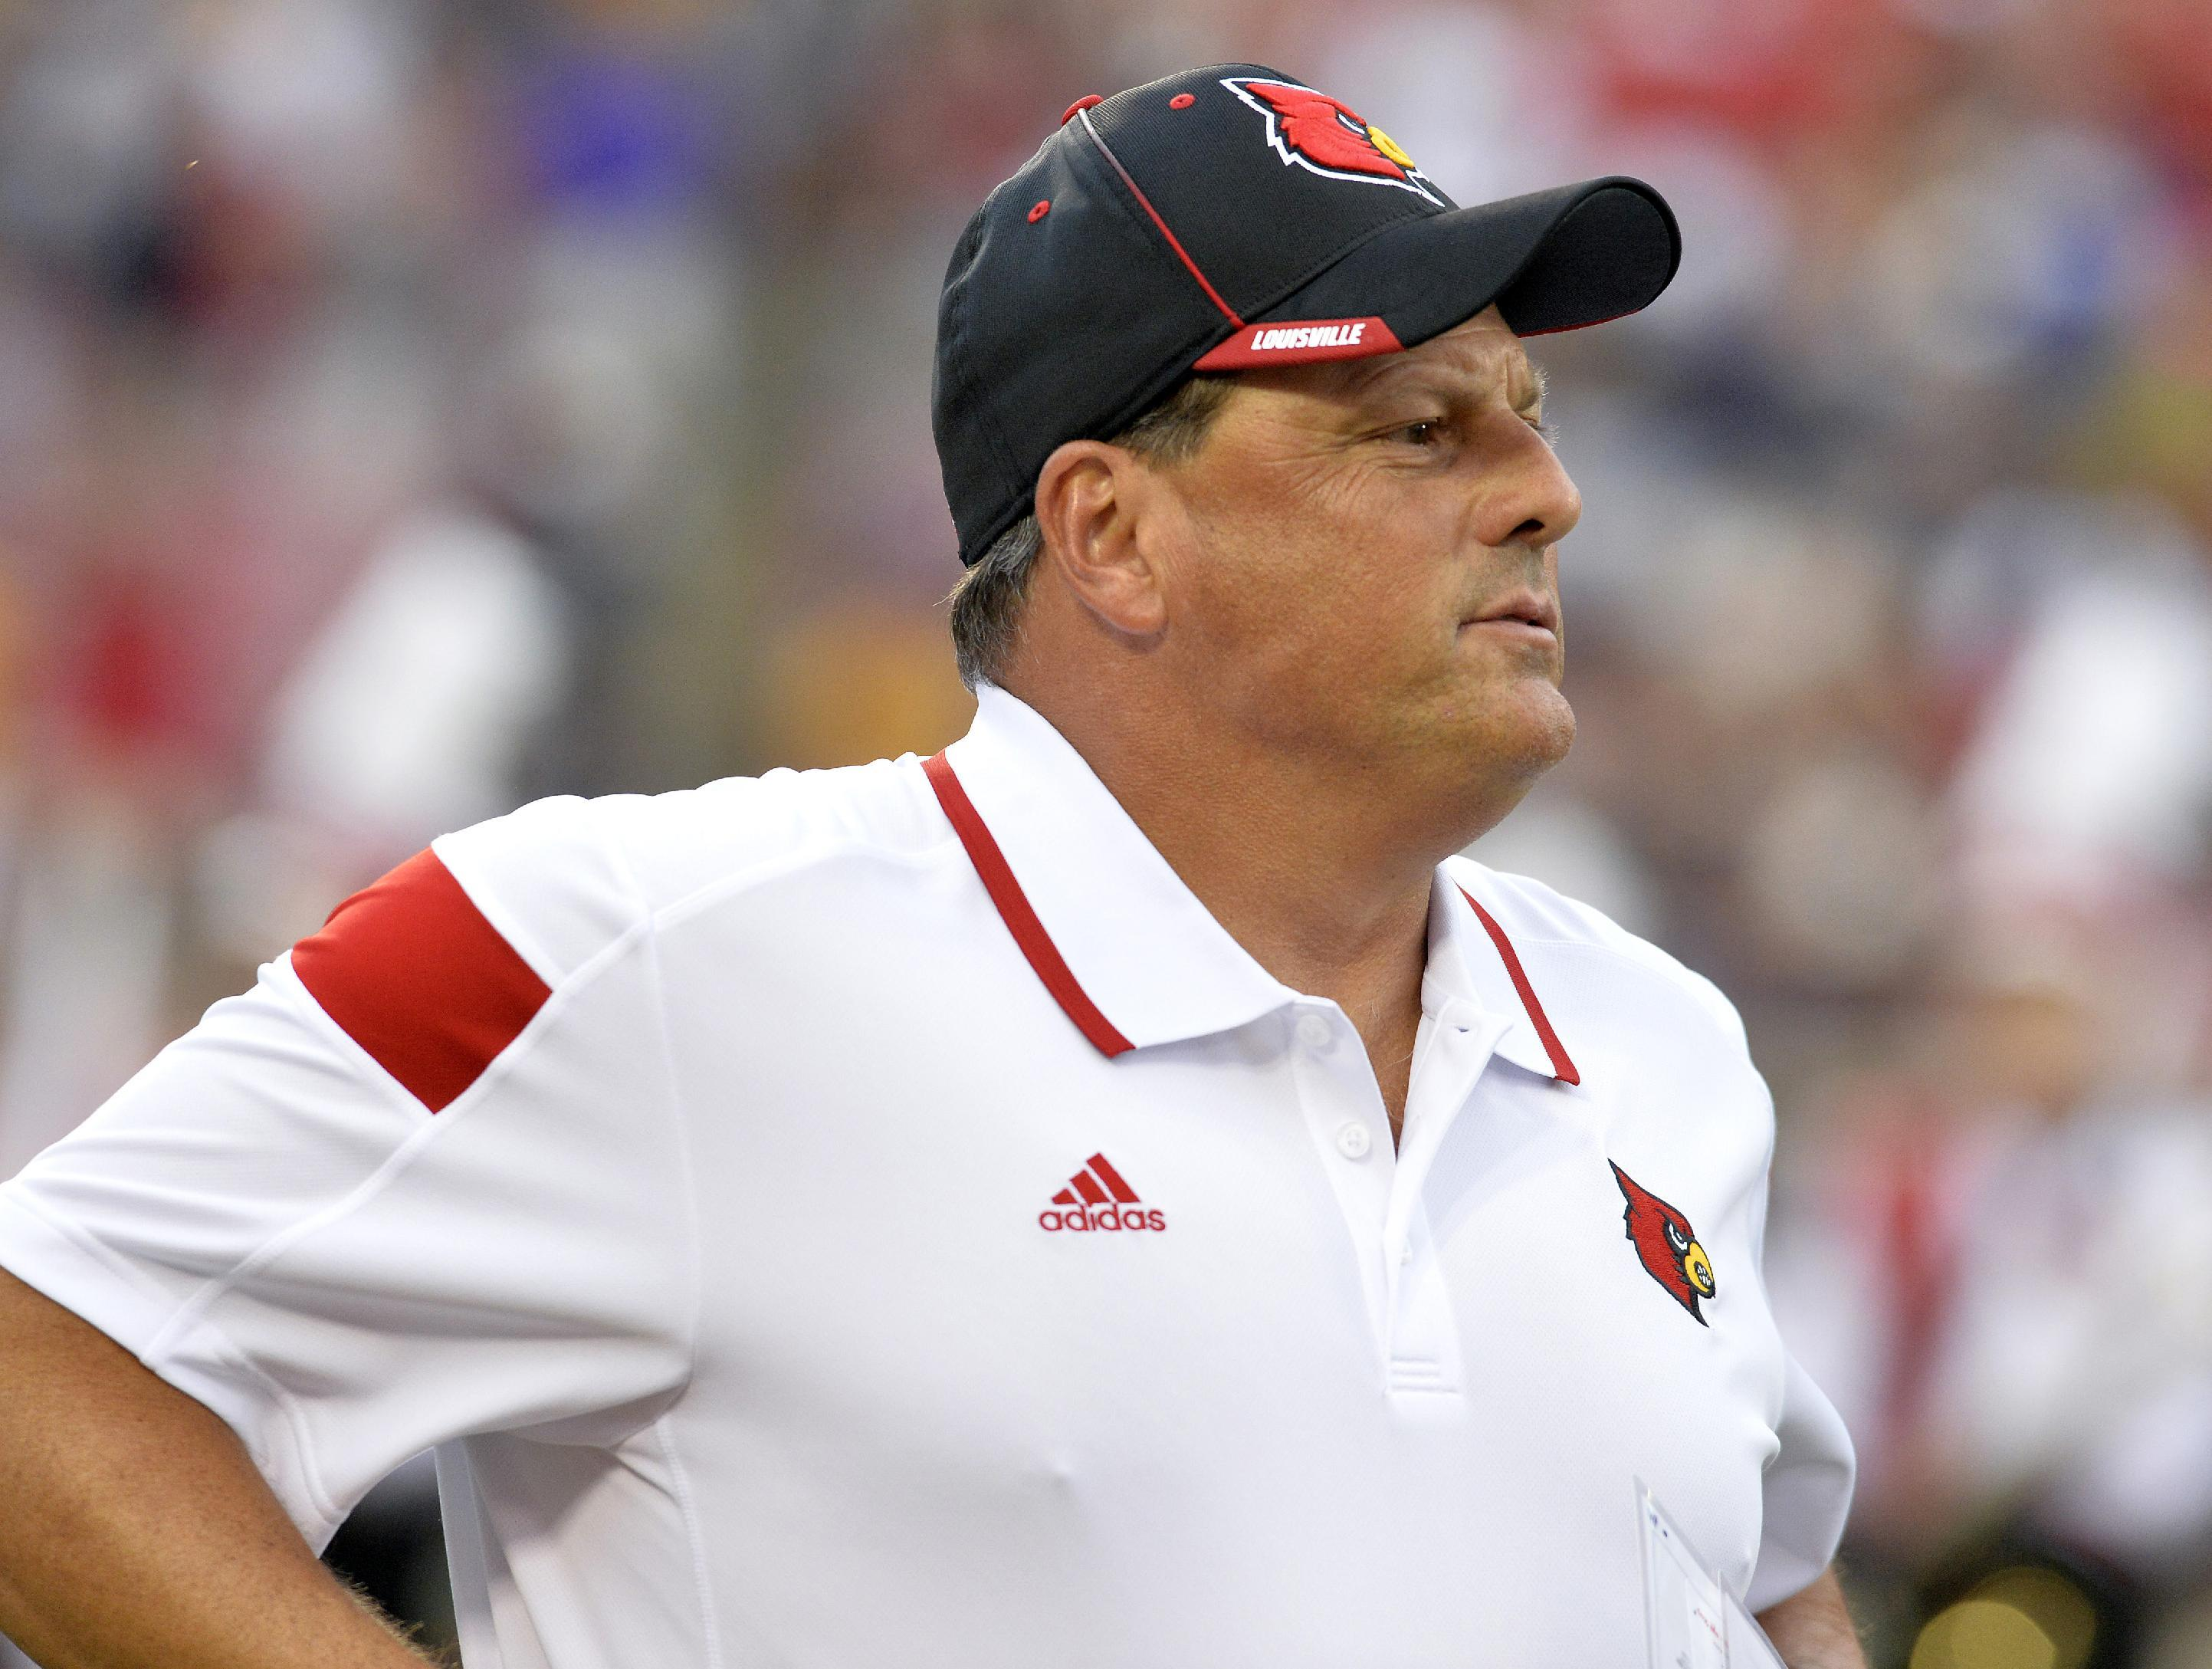 With Raiders offer on table, Todd Grantham stays at Louisville